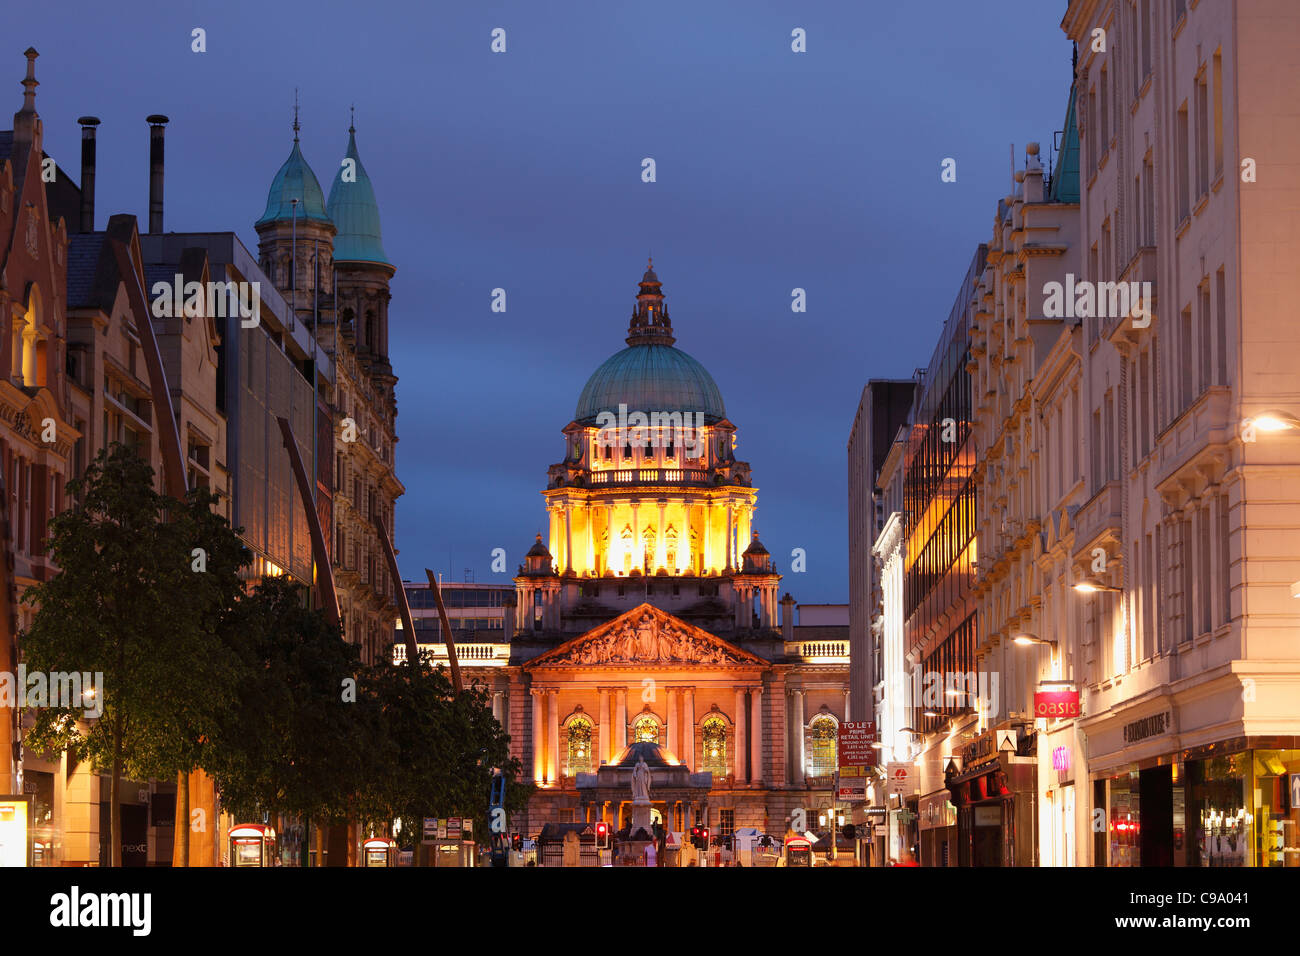 United Kingdom, Ireland, Northern Ireland, Belfast, View of city hall at donegall place - Stock Image